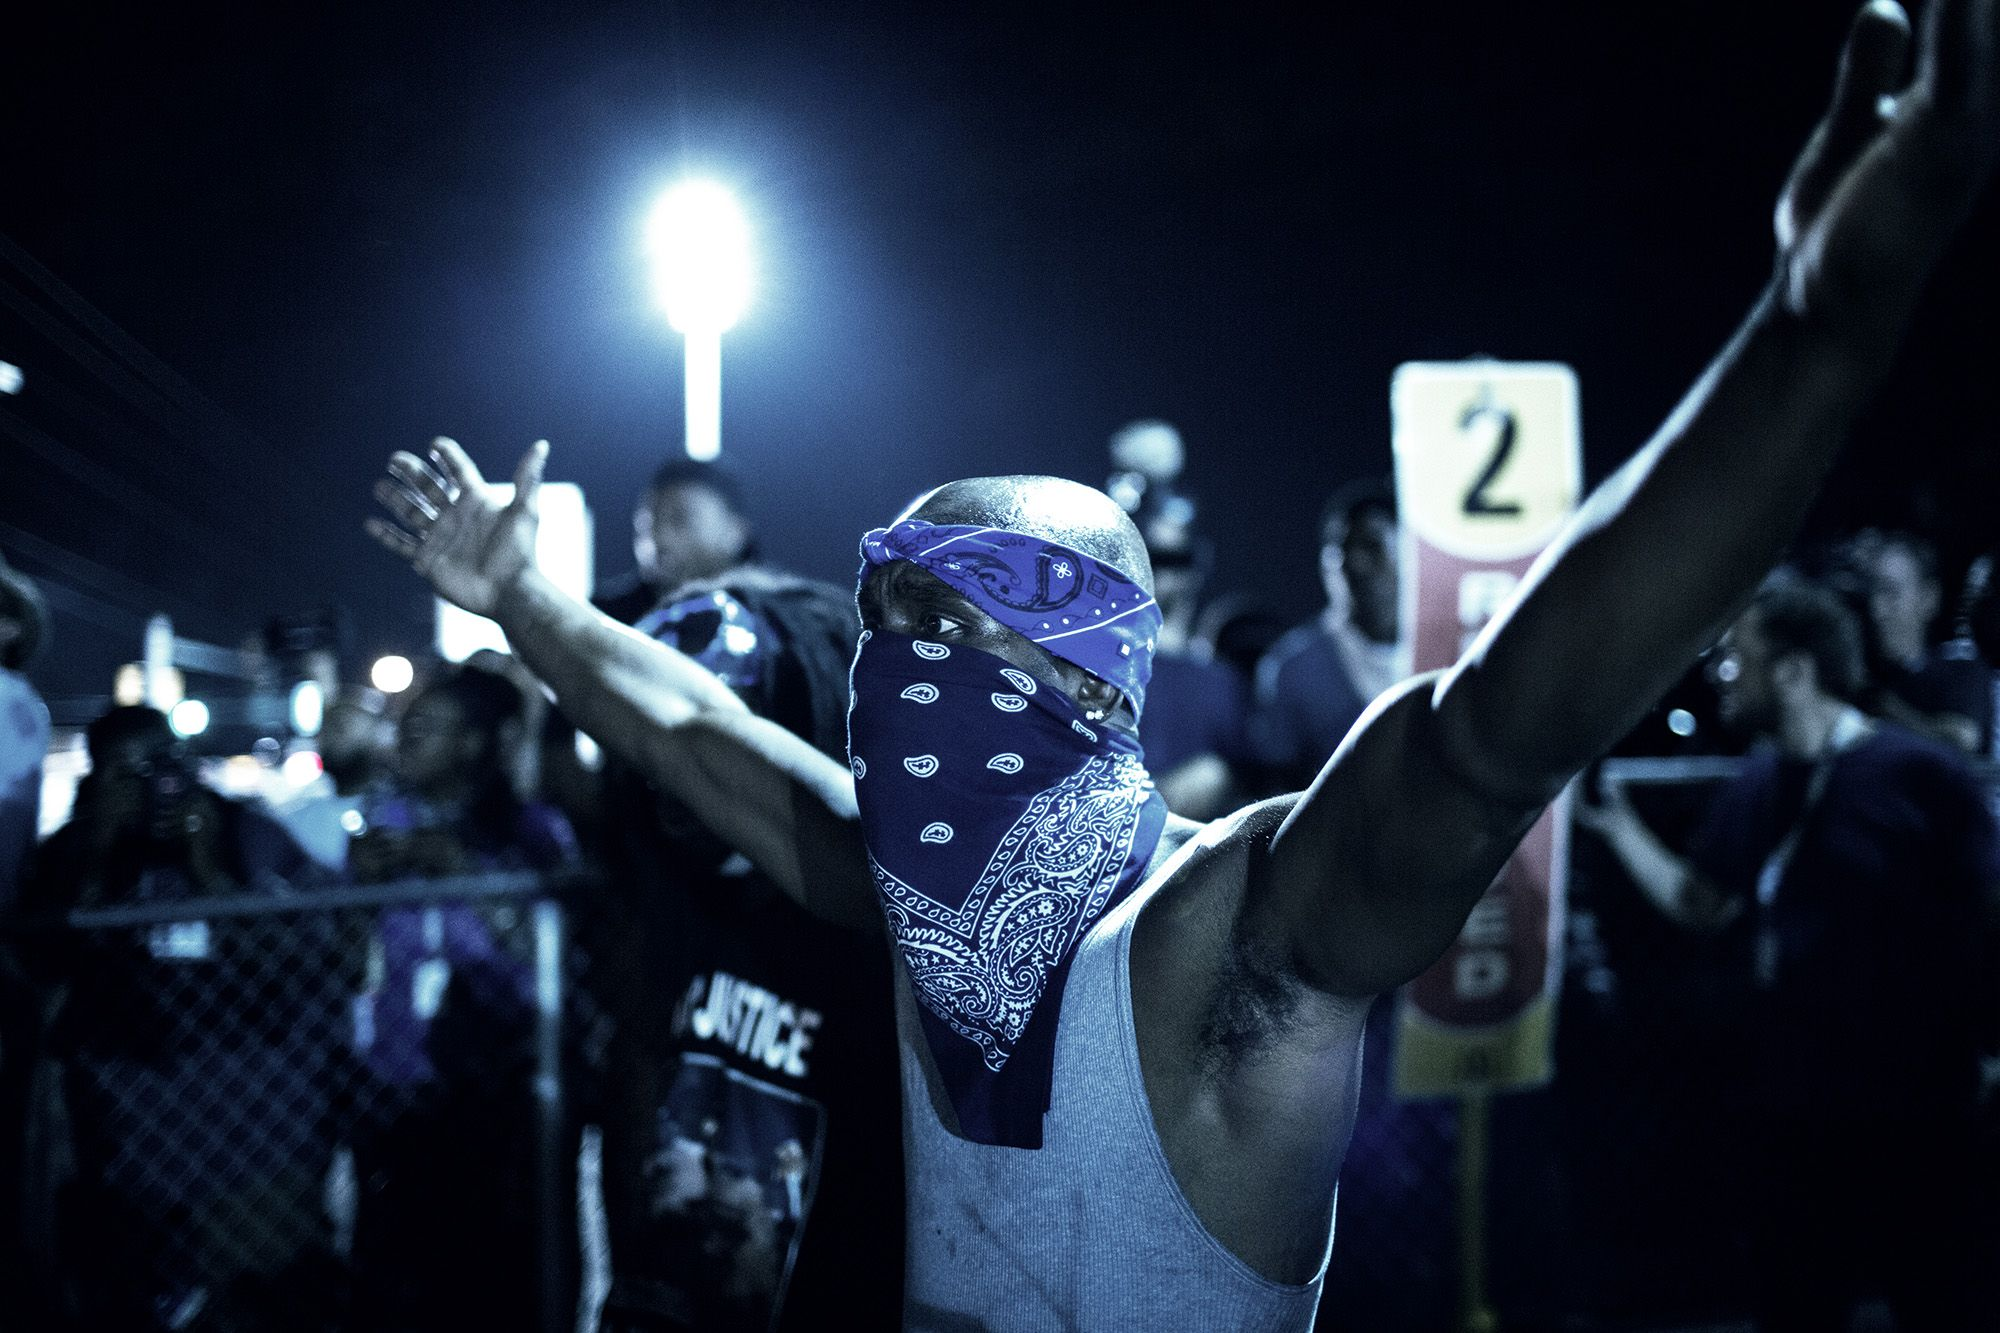 A protestor demonstrates in Ferguson, Mo. on Aug. 19, 2014.